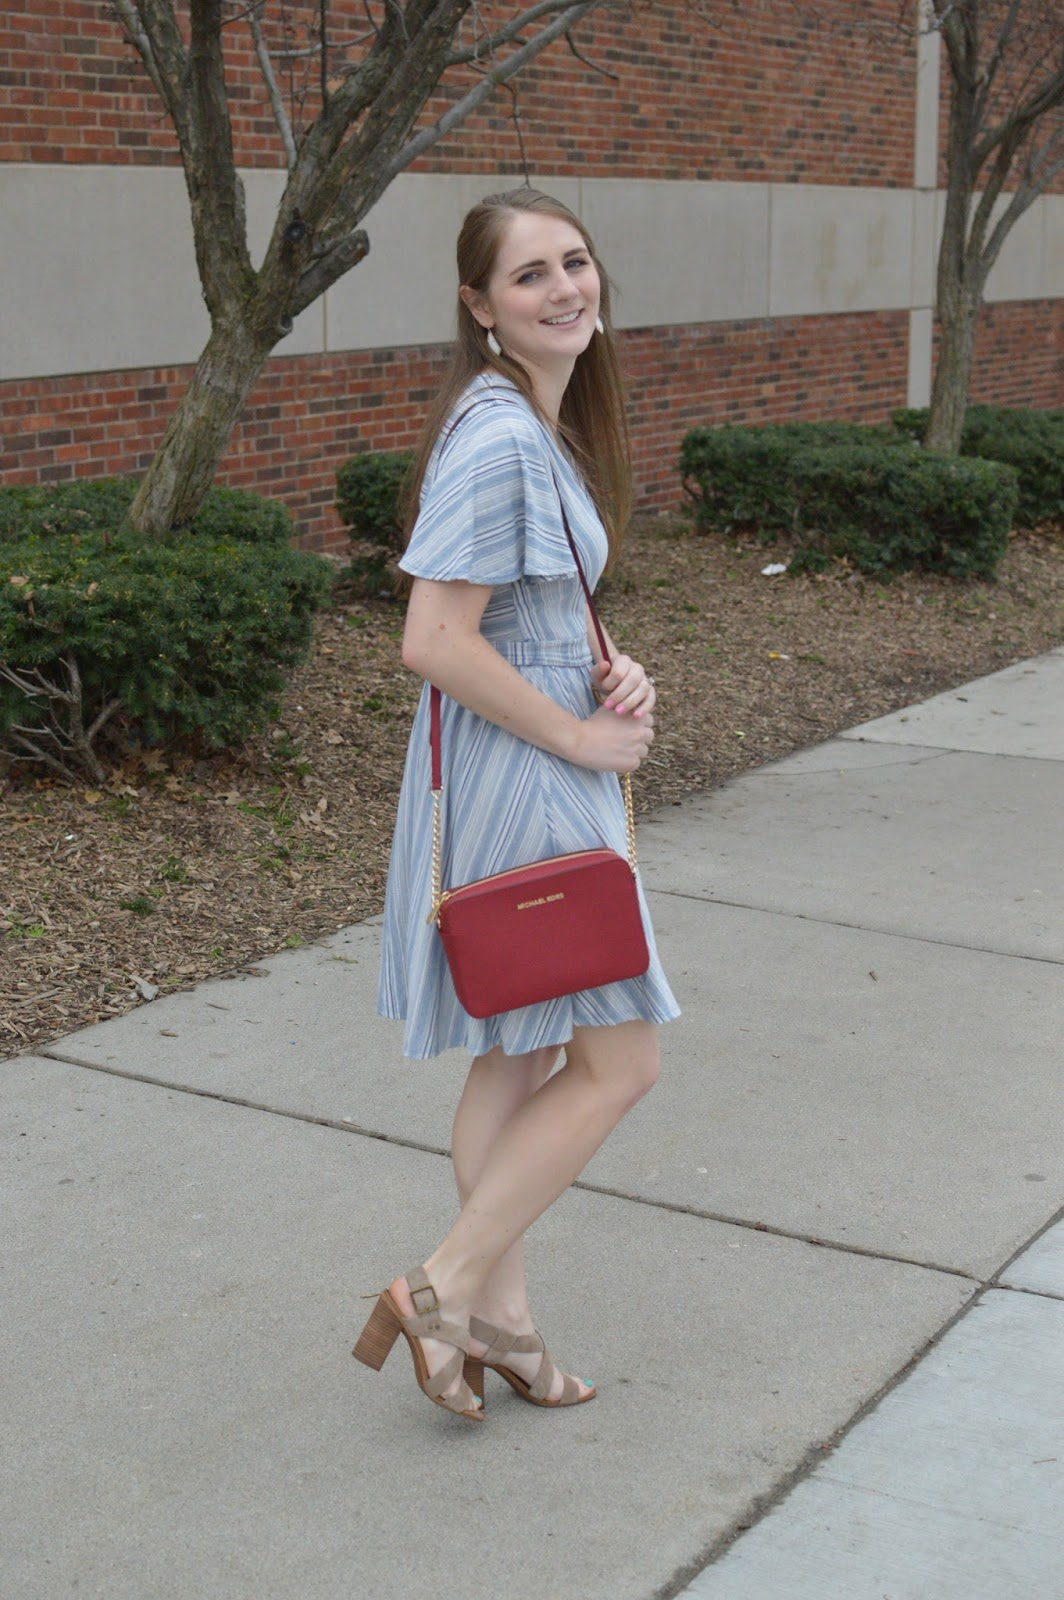 striped dress with a red bag: cute dresses for spring